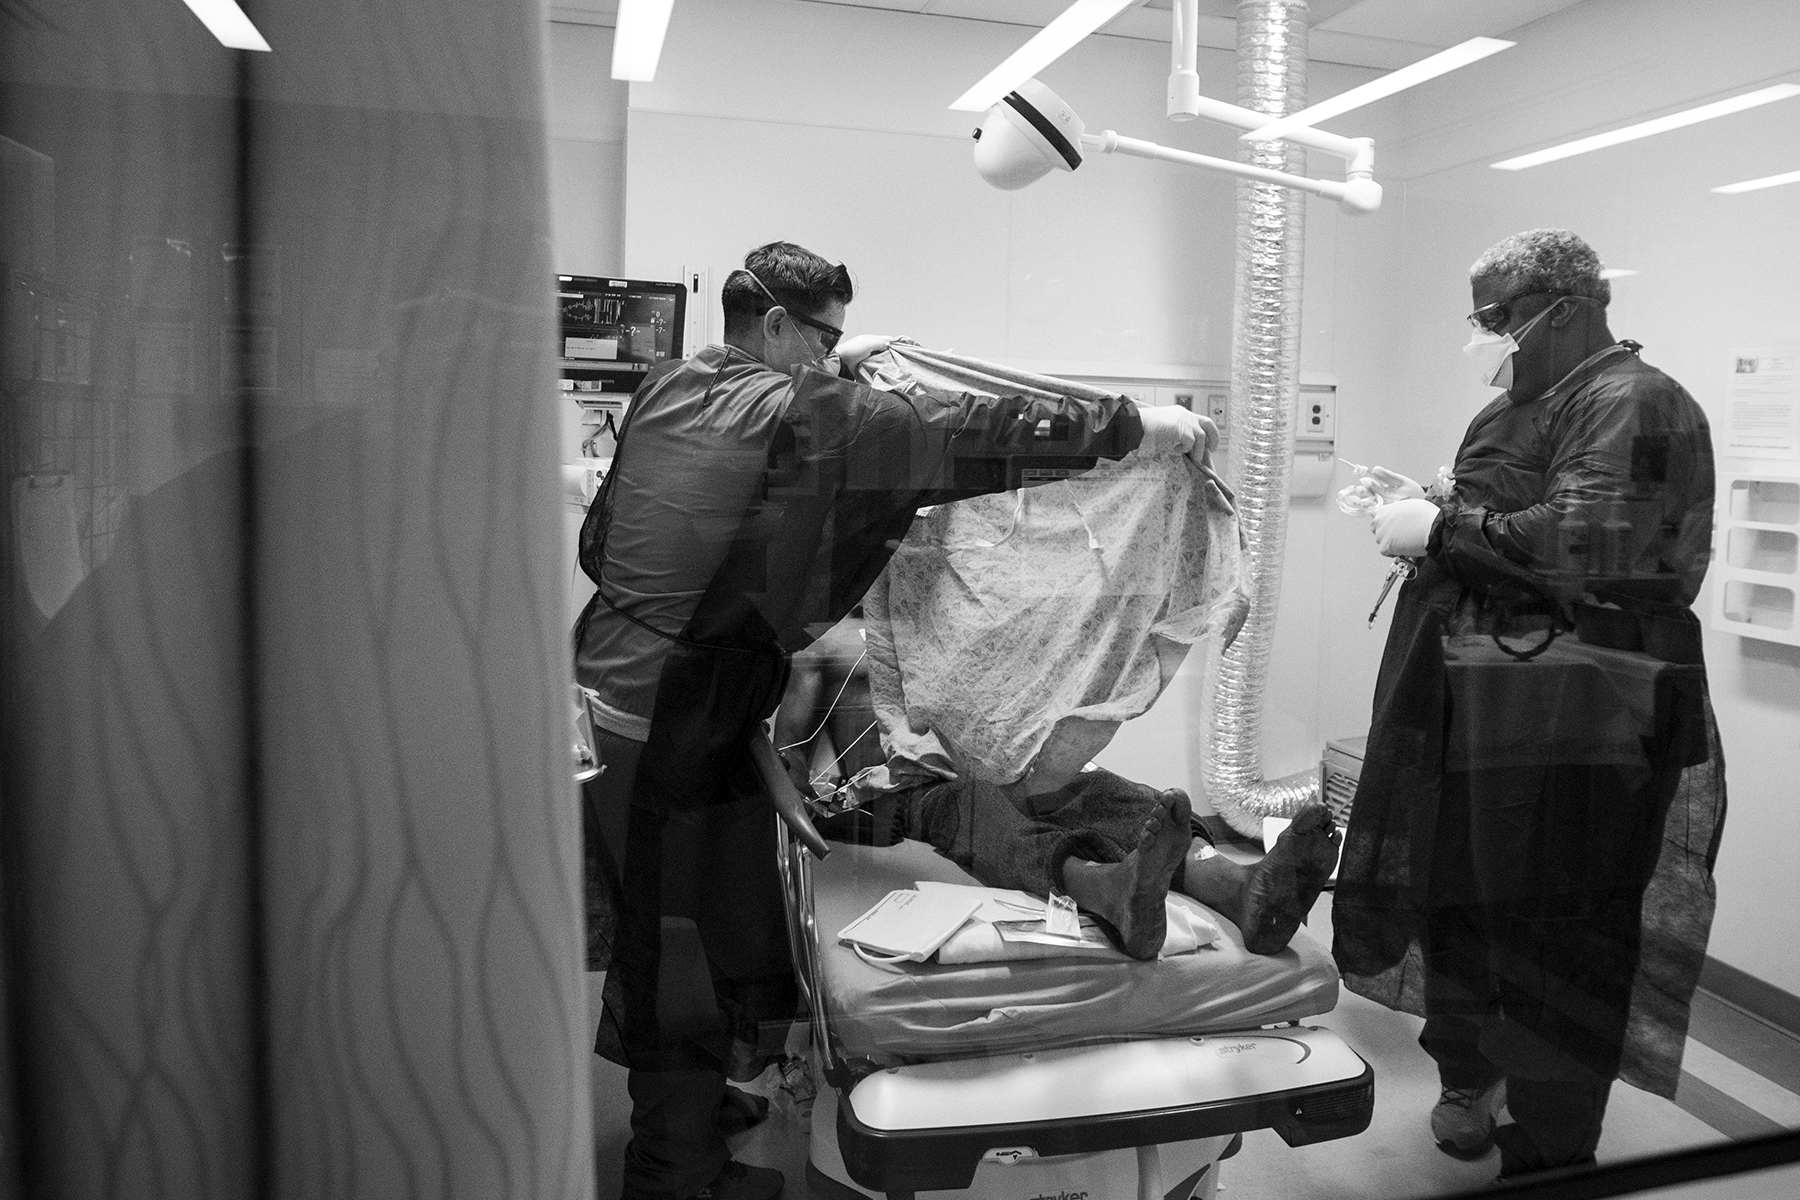 LOS ANGELES, CA - APRIL 24: Christopher Prado, EMT, left, and Jesse Lynwood, ED RN, right, work with a patient in the Emergency Department at Martin Luther King, Jr., Community Hospital on Thursday, April 23, 2020 in the Willowbrook neighborhood located in South Los Angeles, CA. The medical team suspects he is covid-19 positive and they are gowned up and putting a taking precautions. Christopher, left. is putting a gown on the patient. (Francine Orr/ Los Angeles Times via Getty Images)